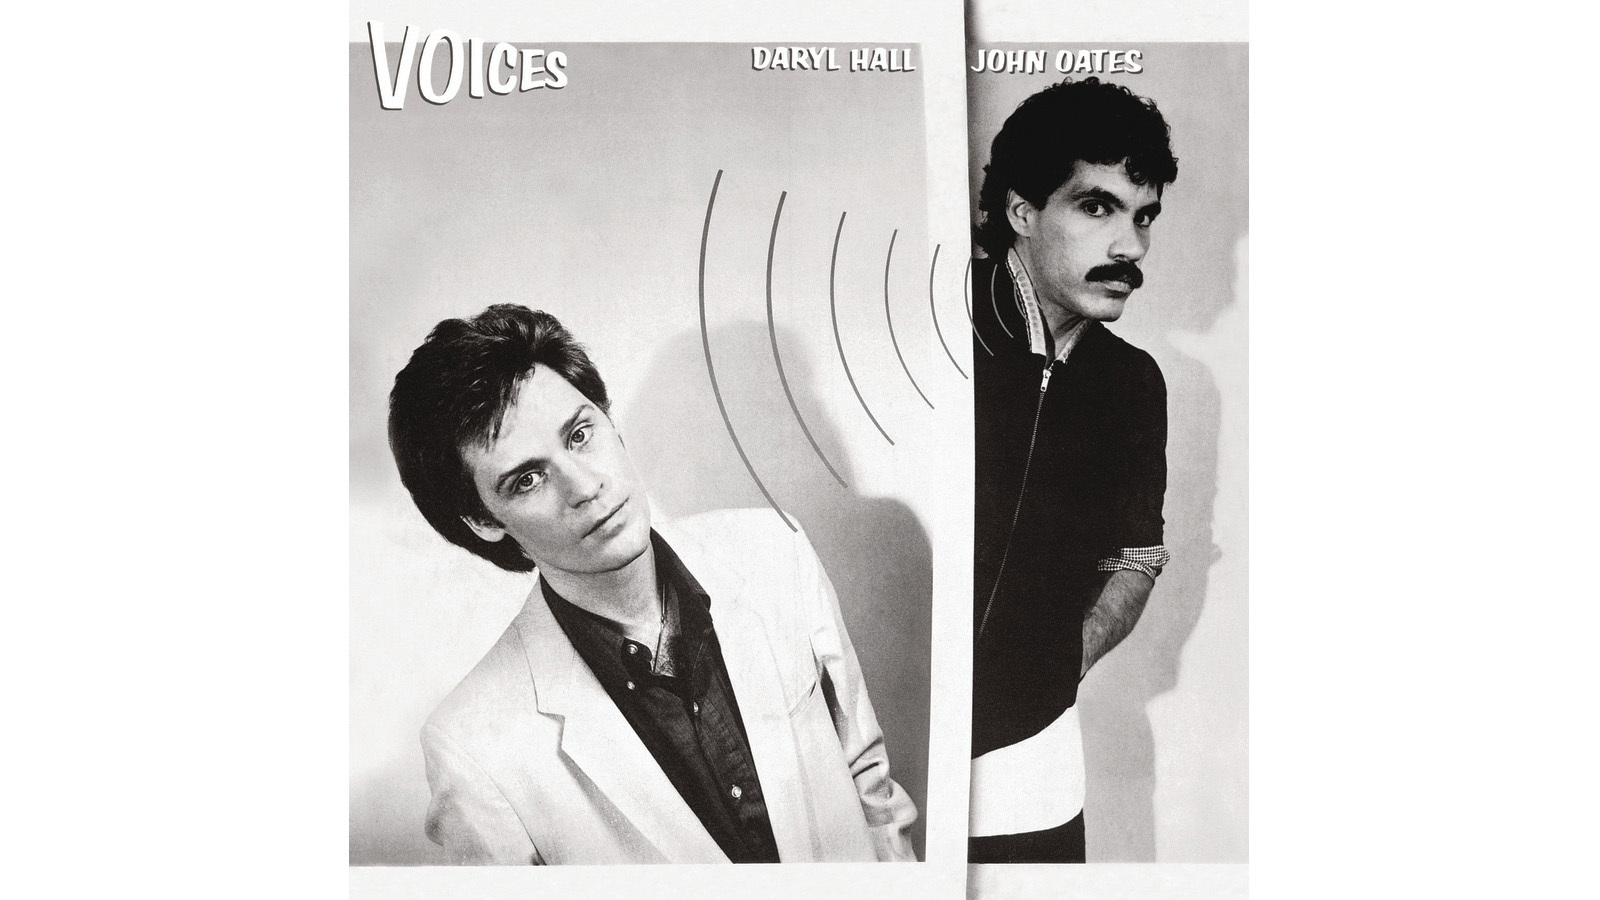 You Make My Dreams – Hall & Oates